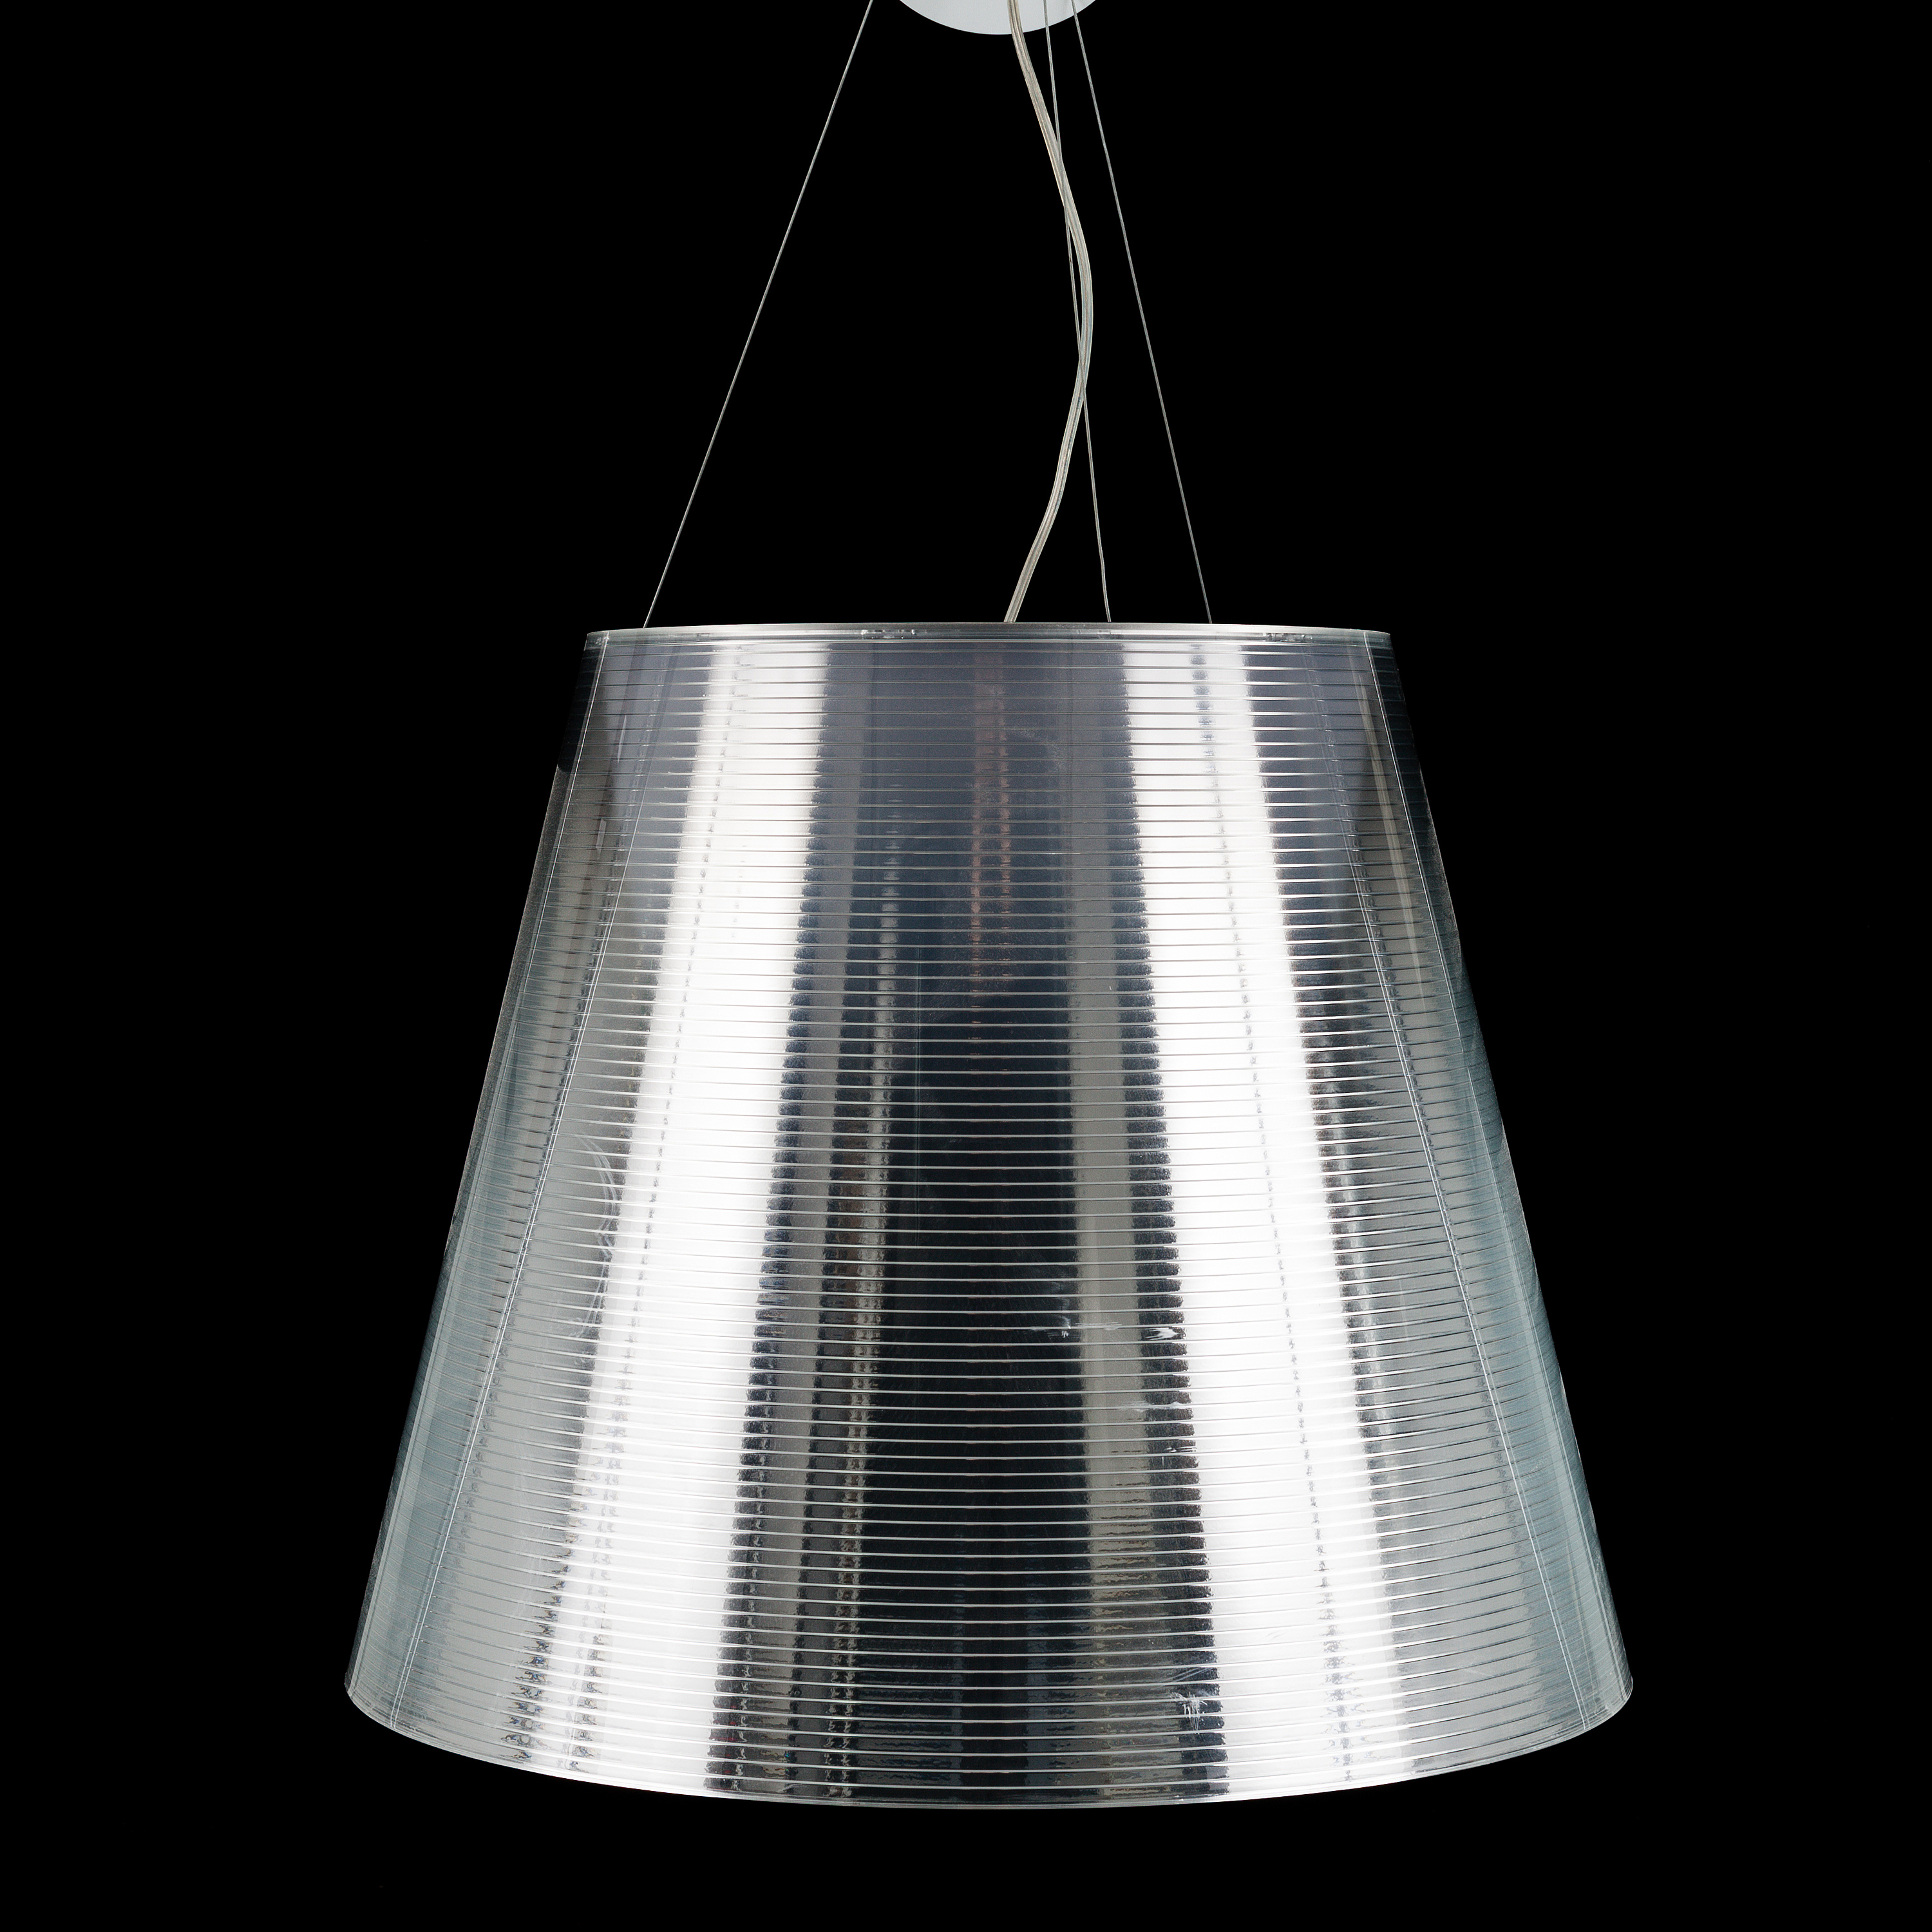 Philippe starck a philippe starck k tribe s3 ceiling light from 10930112 bukobject arubaitofo Gallery